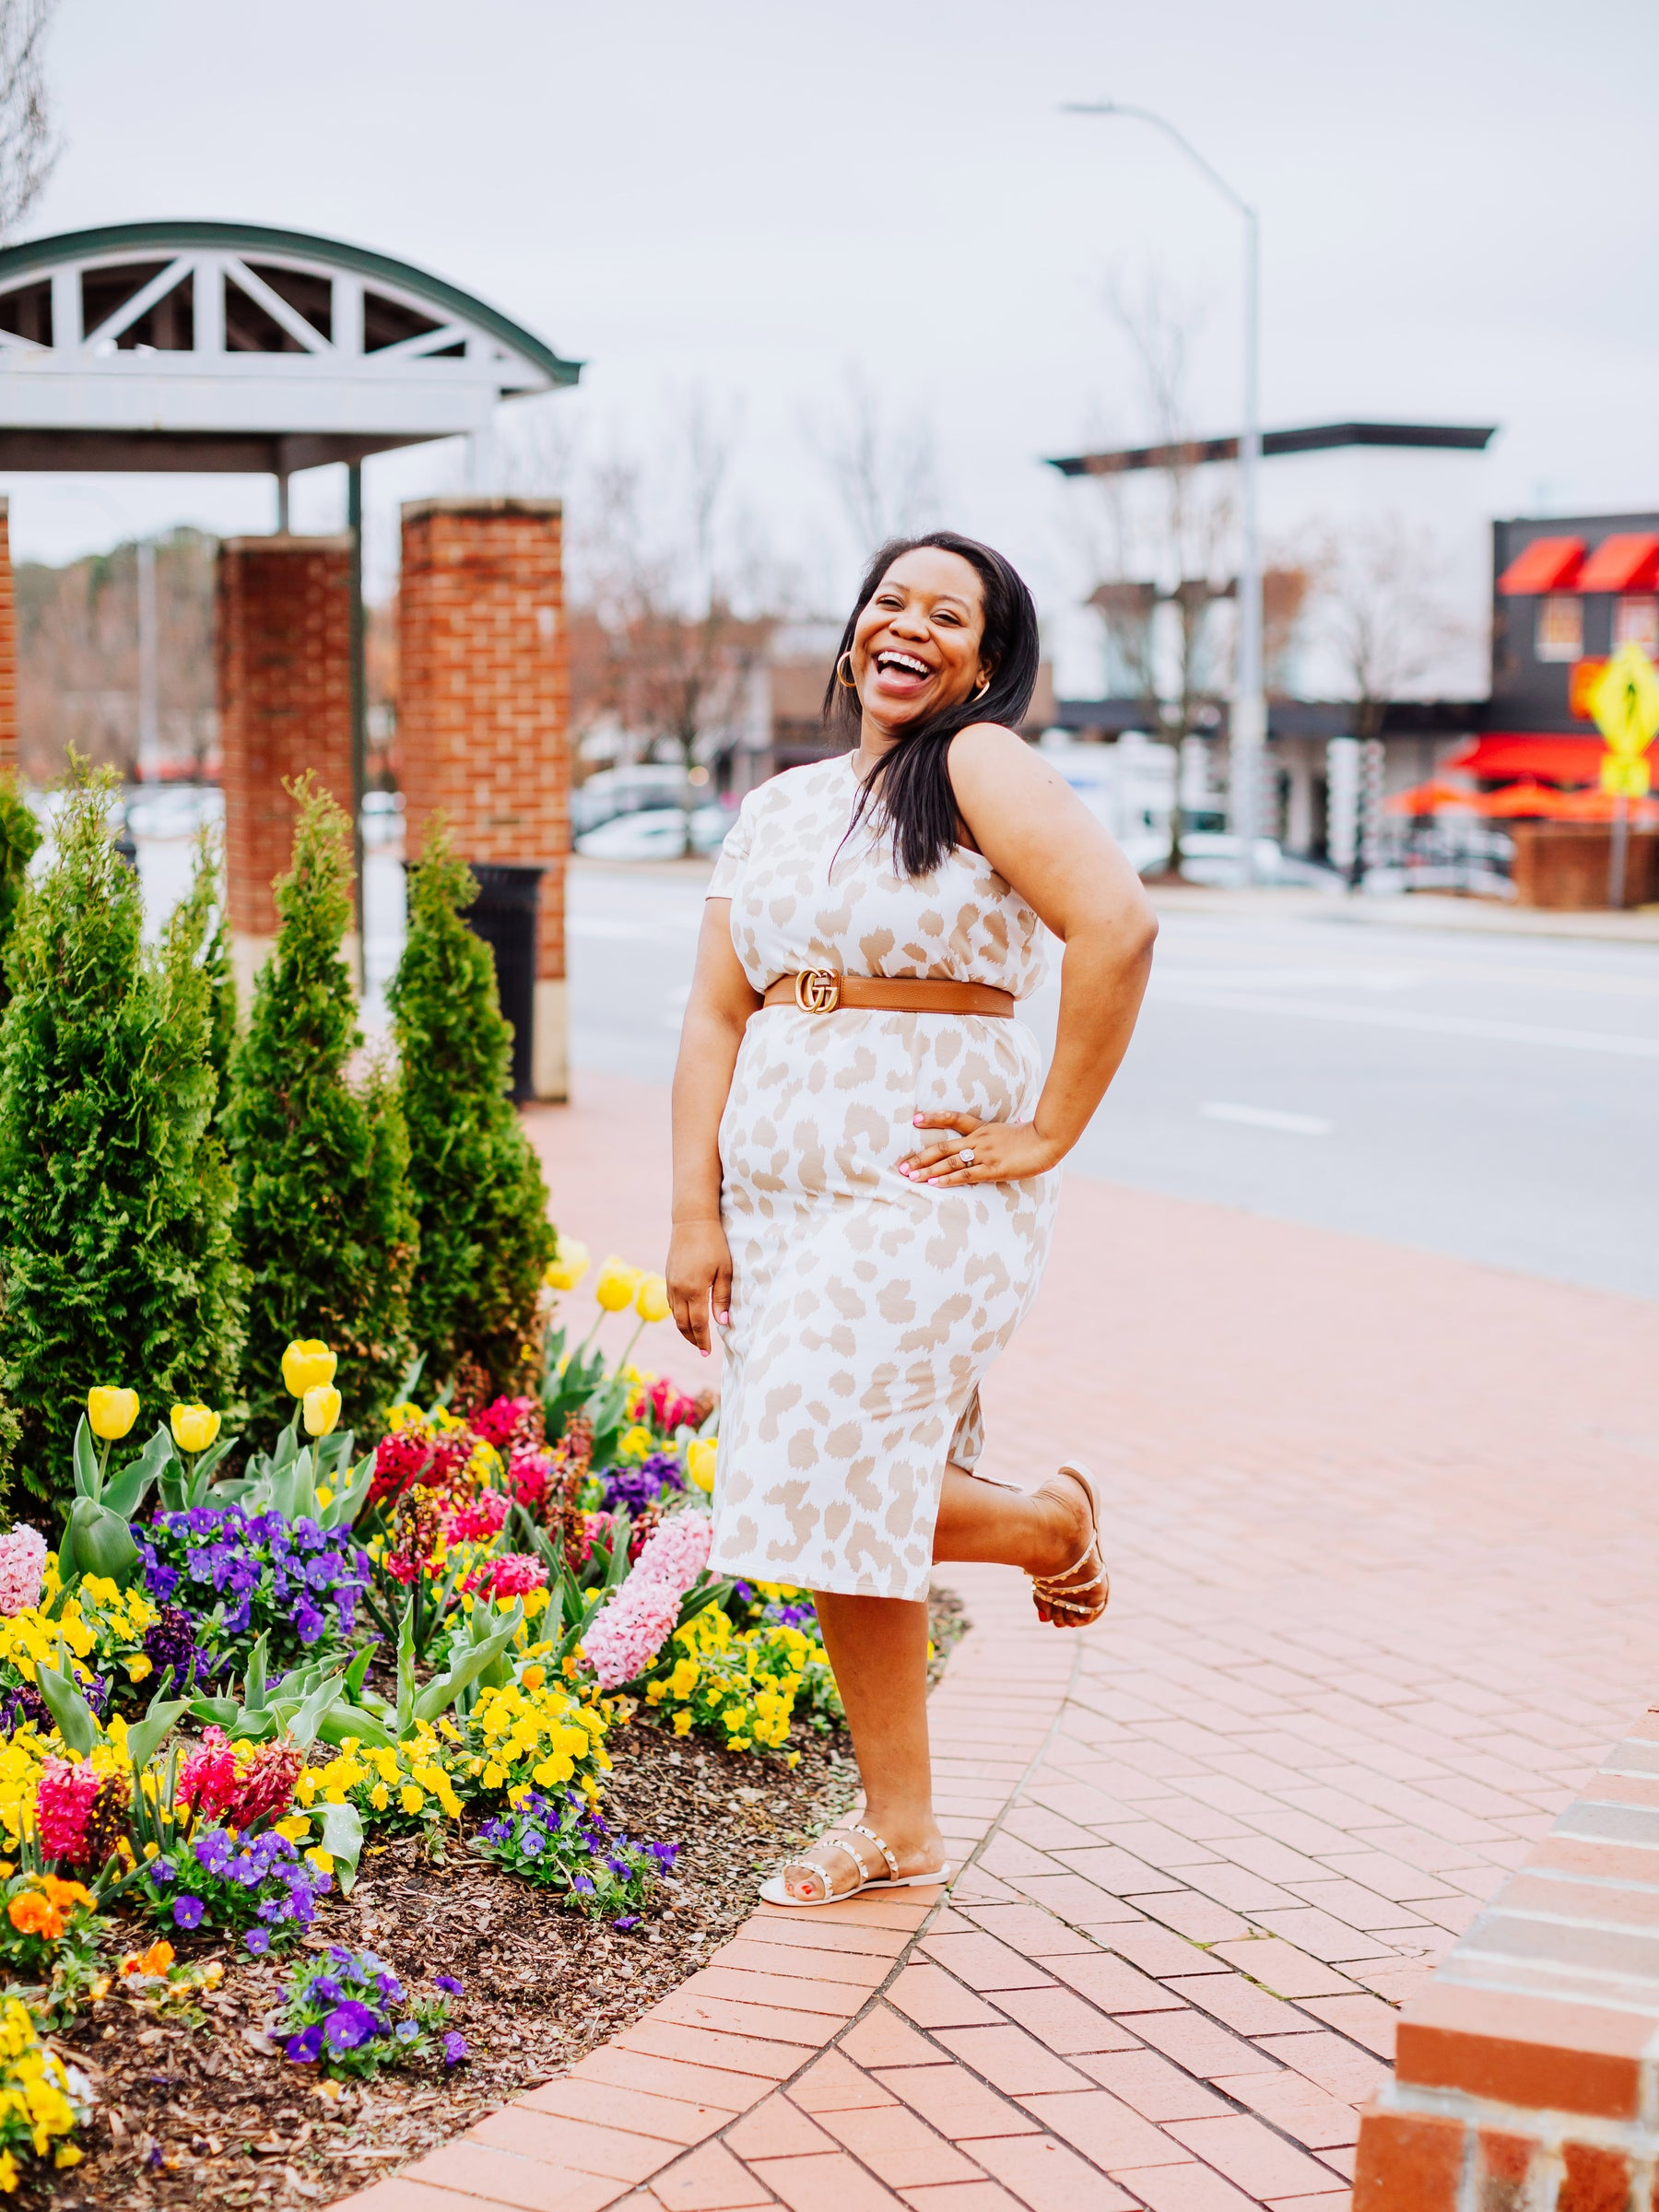 Photo of Chelsea, the owner of CharleyMadelyn, smiling and wearing a leopard print dress